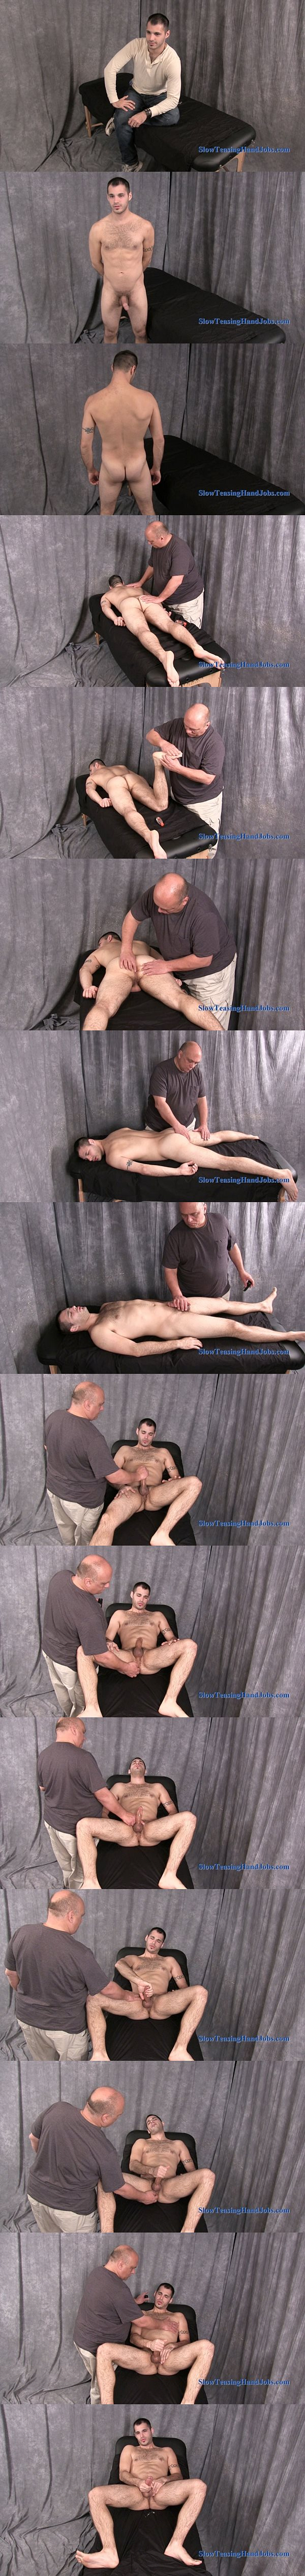 Hot store manager Kyle massaged and jerked at Slowteasinghandjobs 02